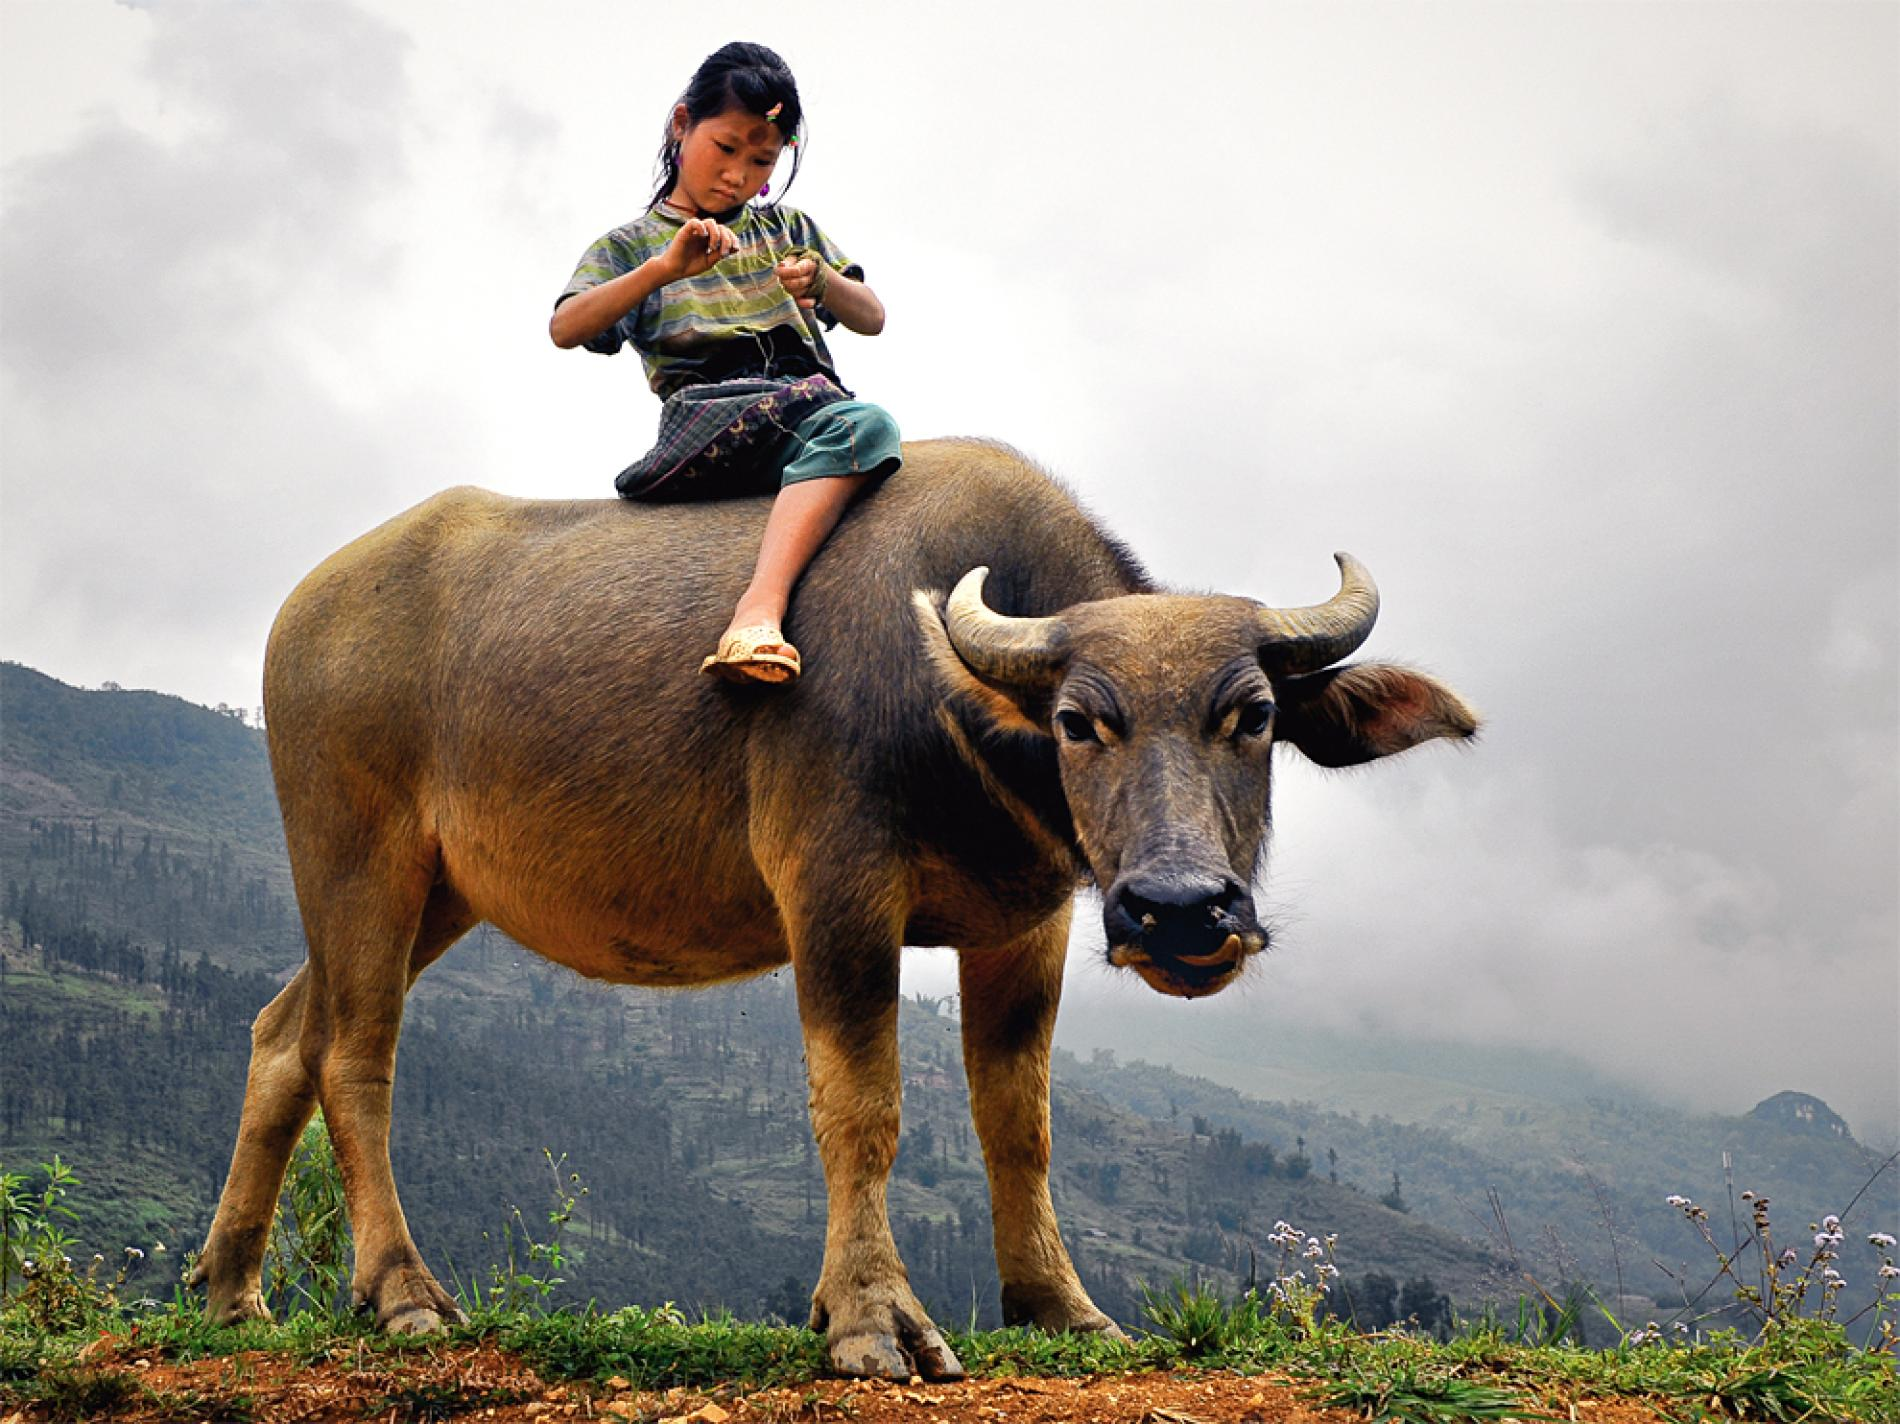 For locals Buffalo riding is just an easier way to get around. (Image sourced from Google)